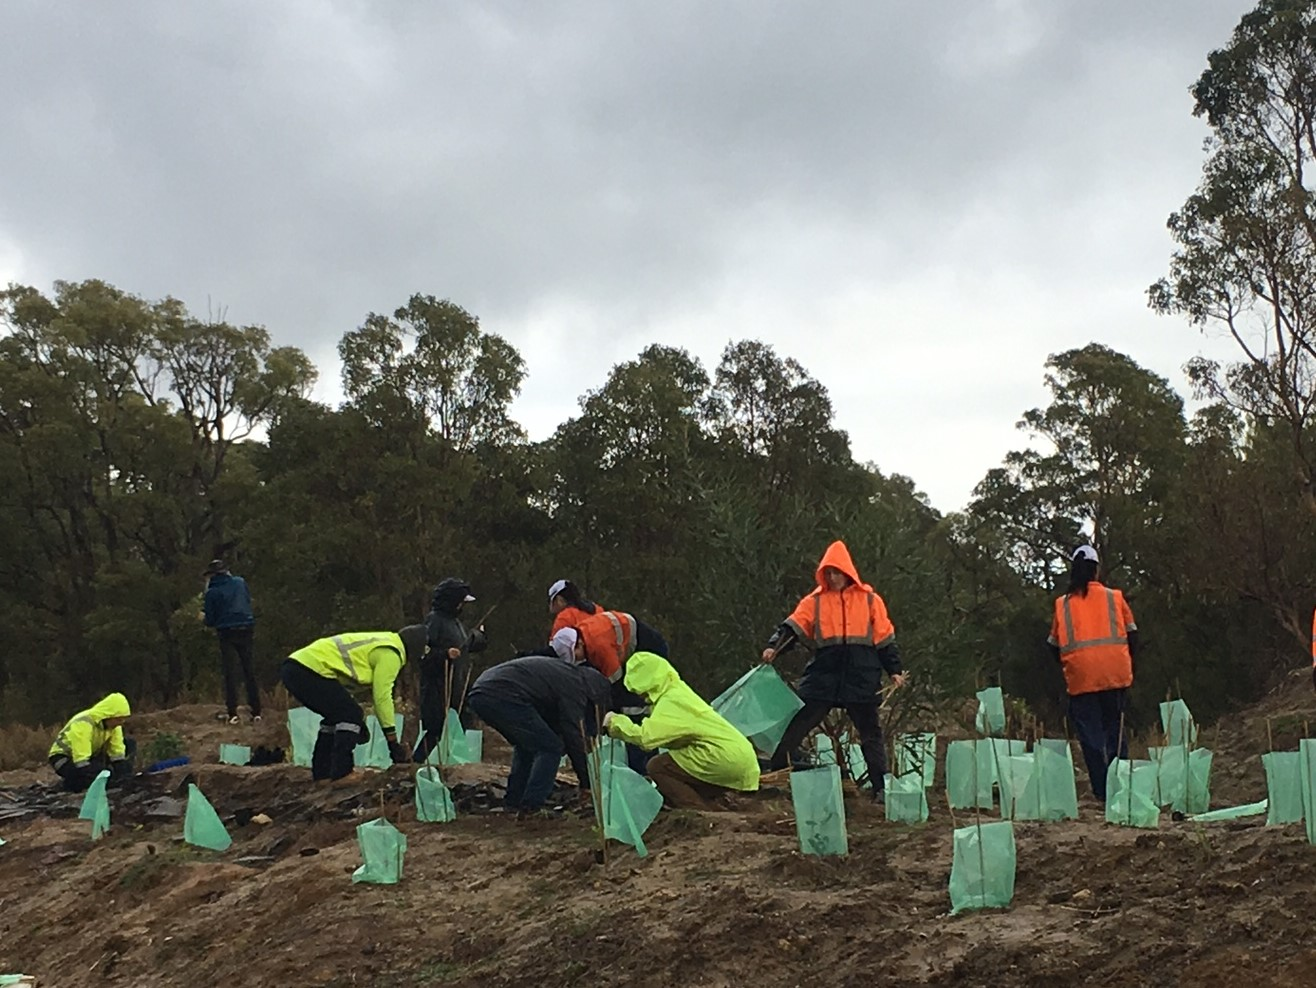 Workshop participants planting native trees at Kaarakin. Trees were donated by Holcim from their Gosnells site.